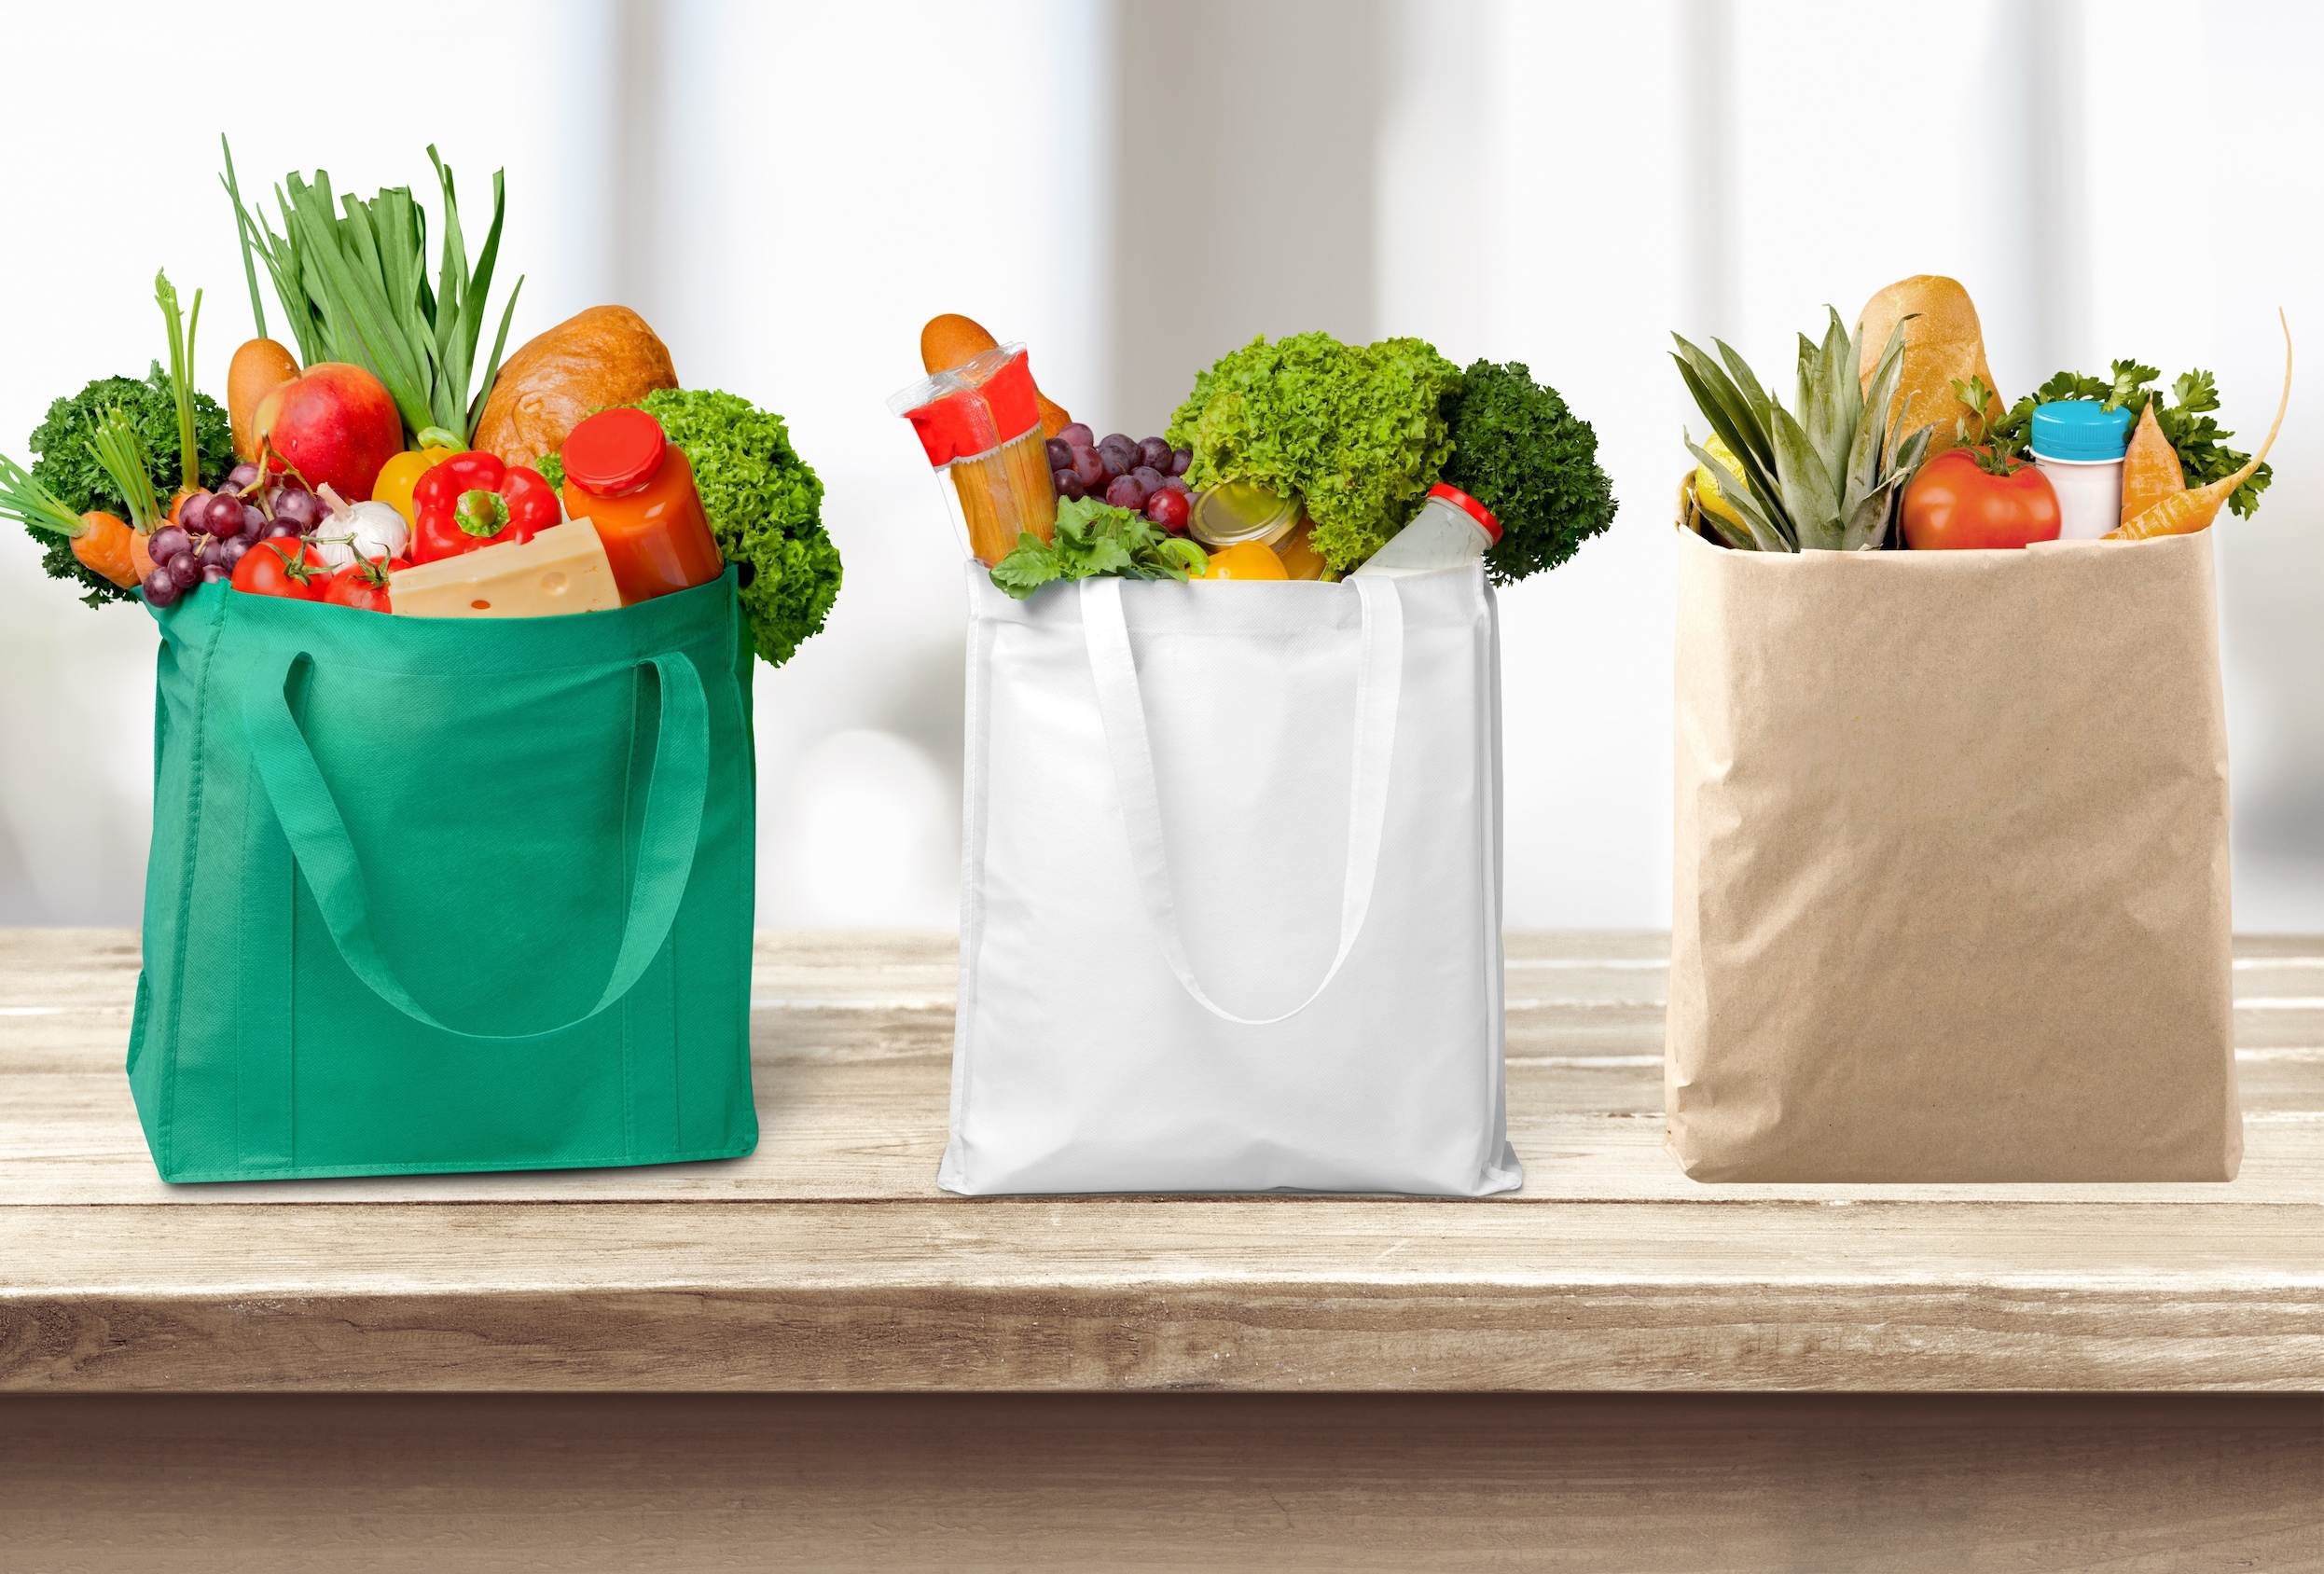 Reusable-shopping-bags-may-not-be-the-perfect-solution-to-plastic